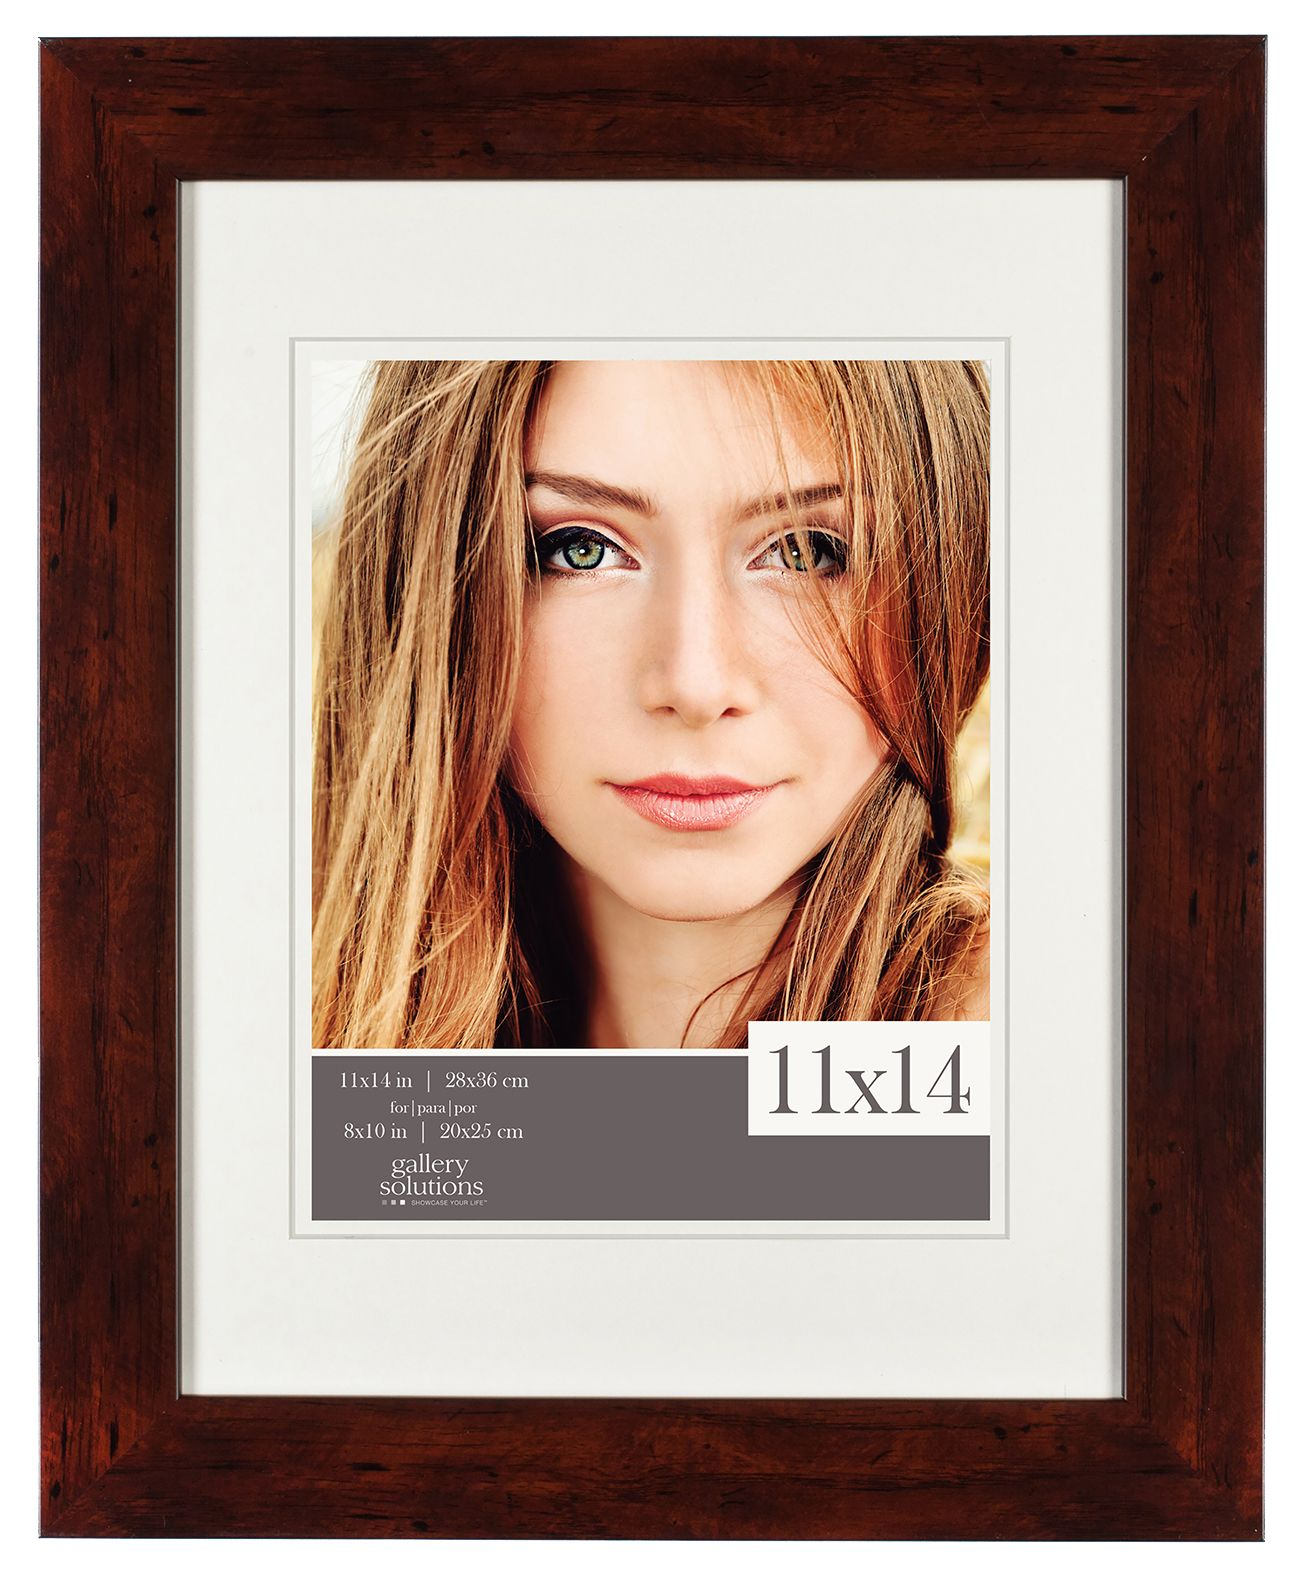 Gallery Solutions 11X14 Flat Walnut Frame, Matted To 8X10, Beige & Tan